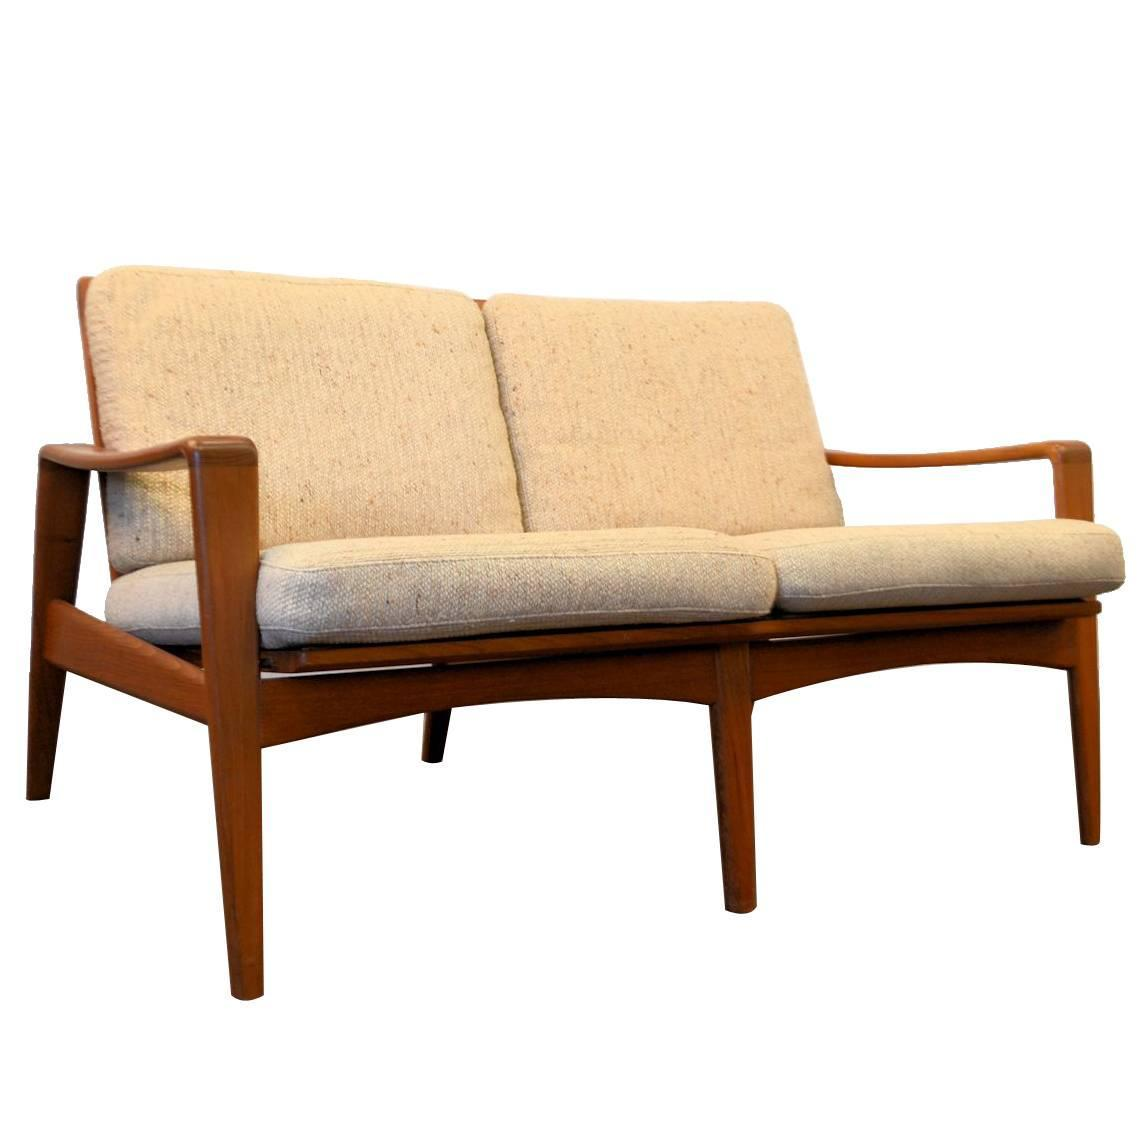 arne wahl iversen two seating teak sofa for sale at 1stdibs. Black Bedroom Furniture Sets. Home Design Ideas